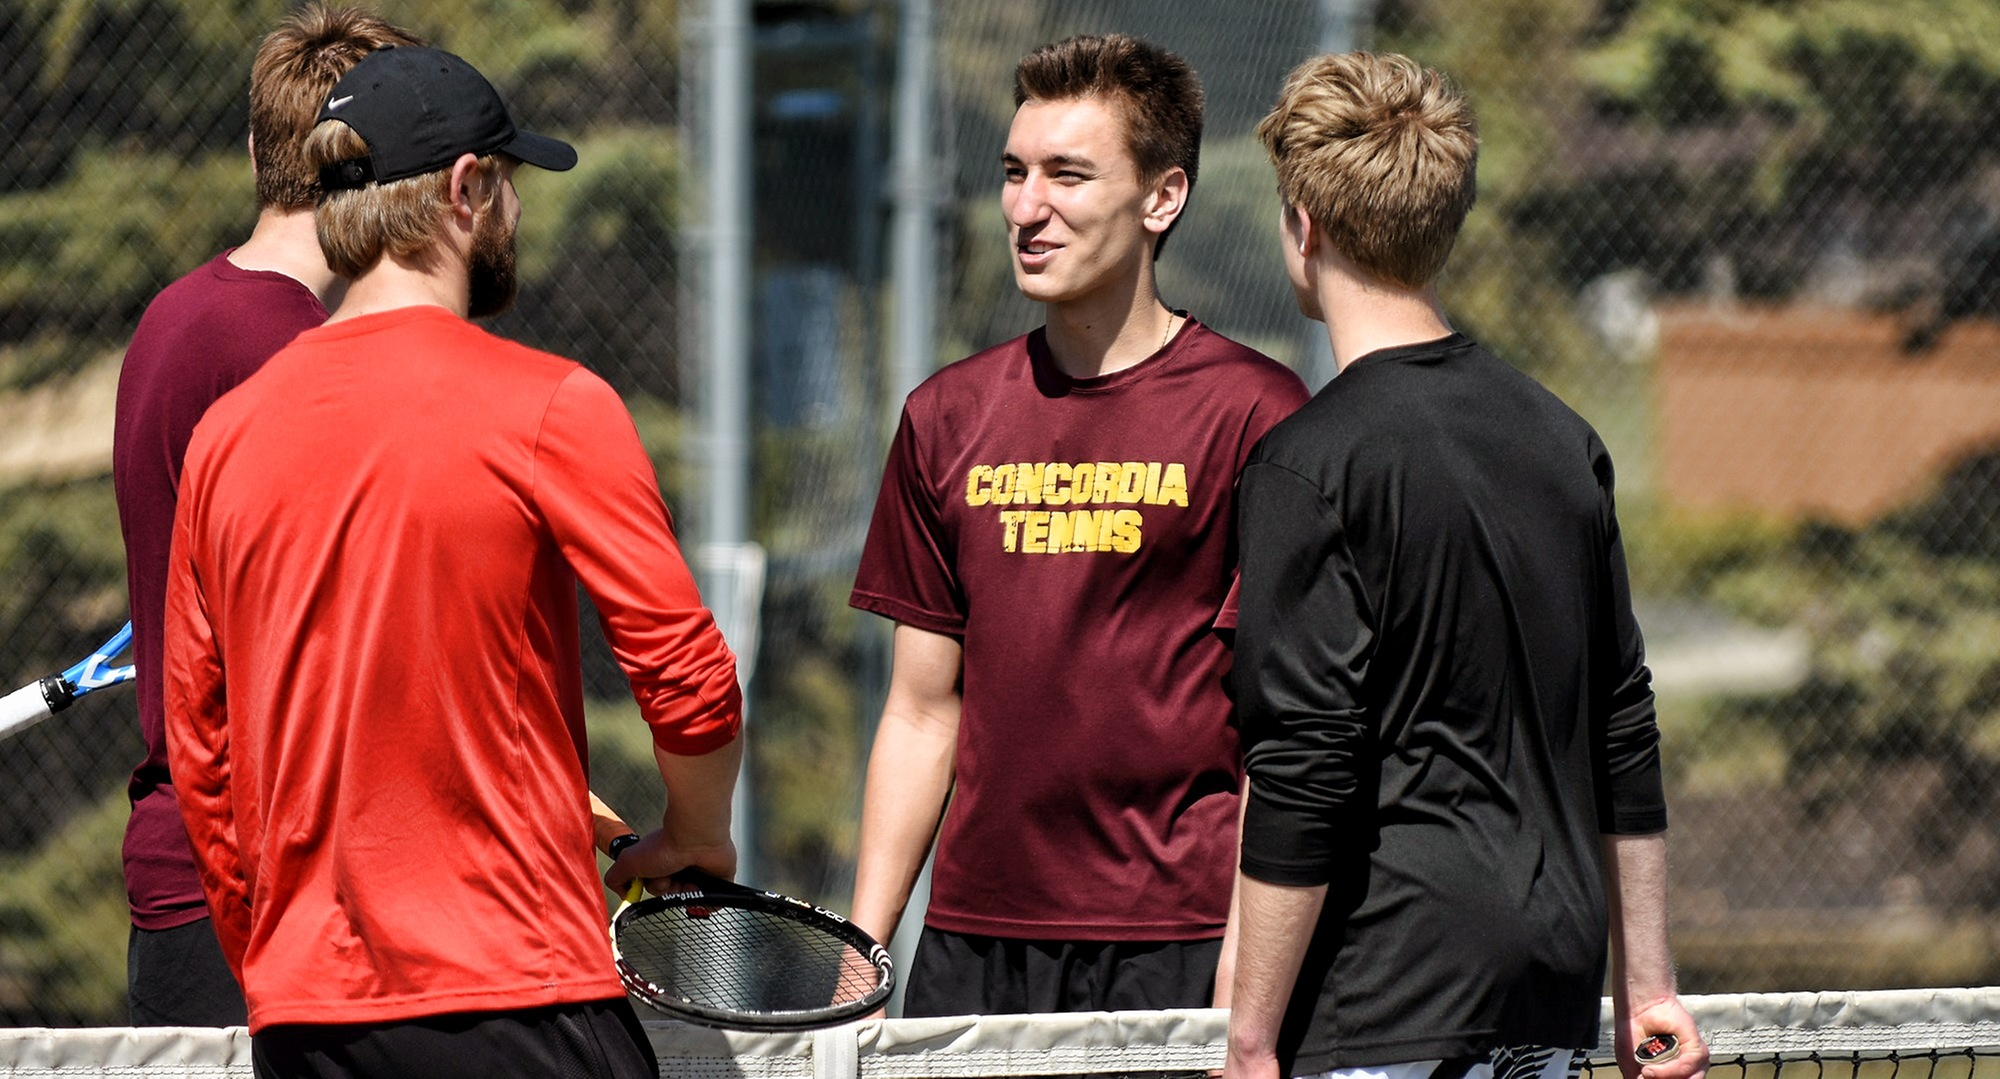 Senior Carter Steffes teamed with freshman Cole Gillespie to earn one of the three doubles wins in the Cobbers' victory over Midway. Gillespie also won in singles play.